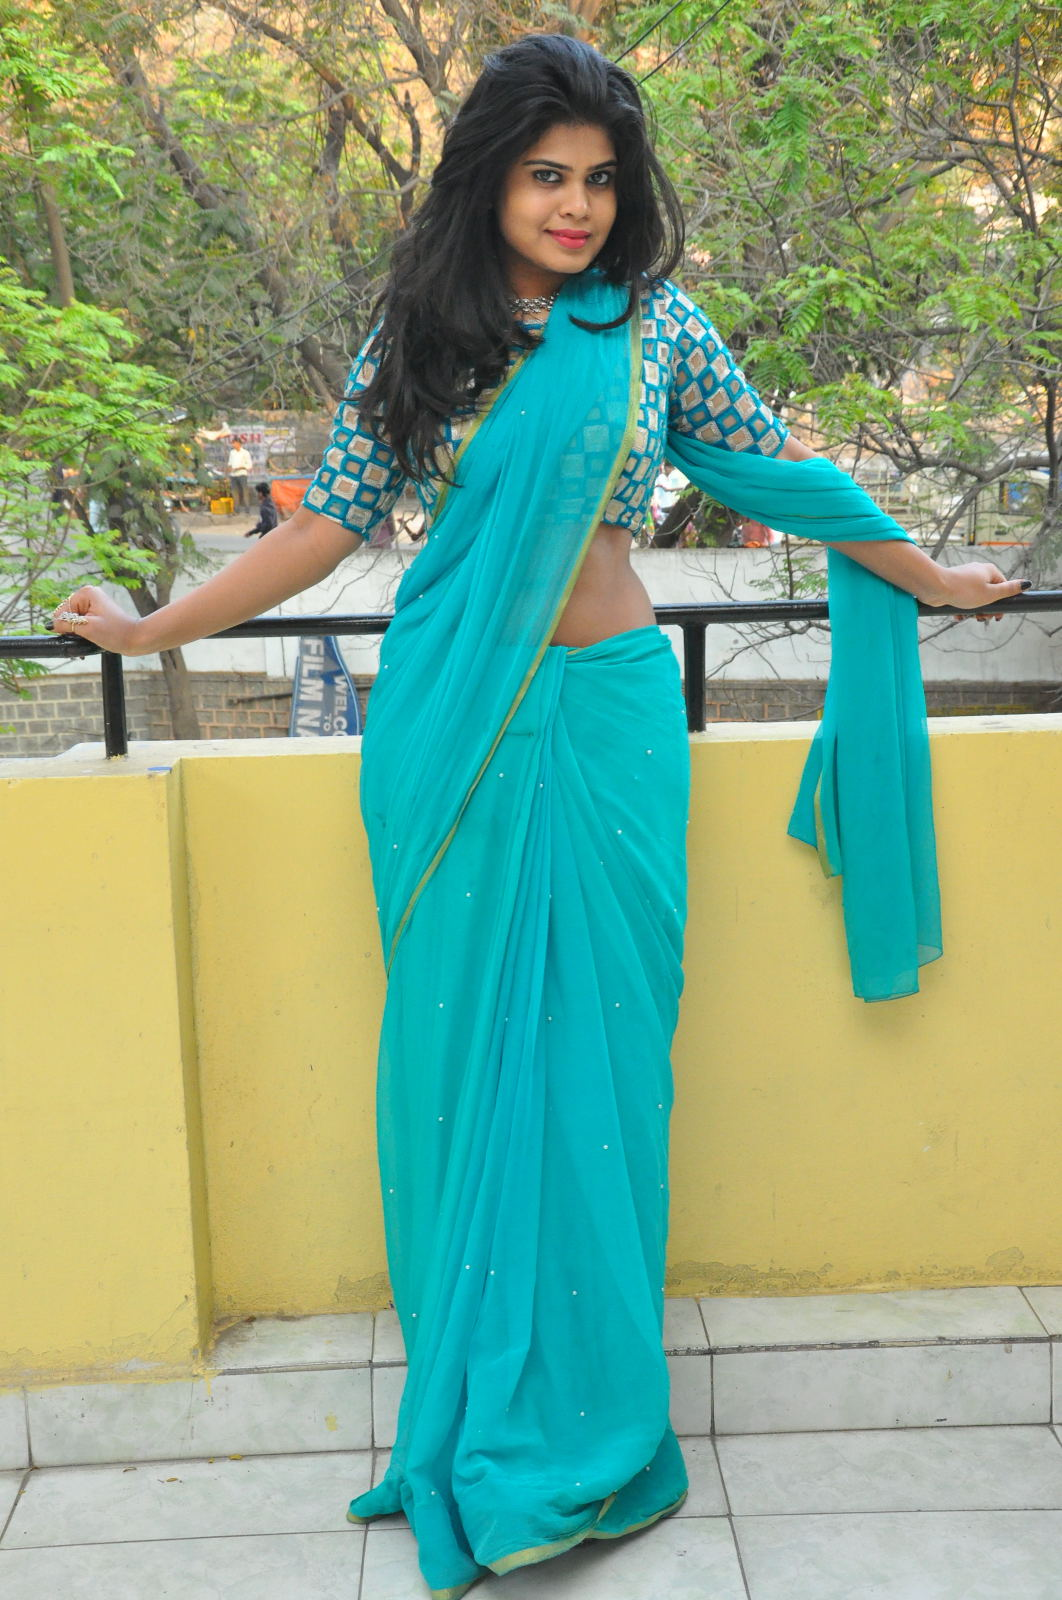 alekhya Brand New Sexy Photo Stills of Alekhya | Tollywood | Actresses Alekhya HOT pics 80